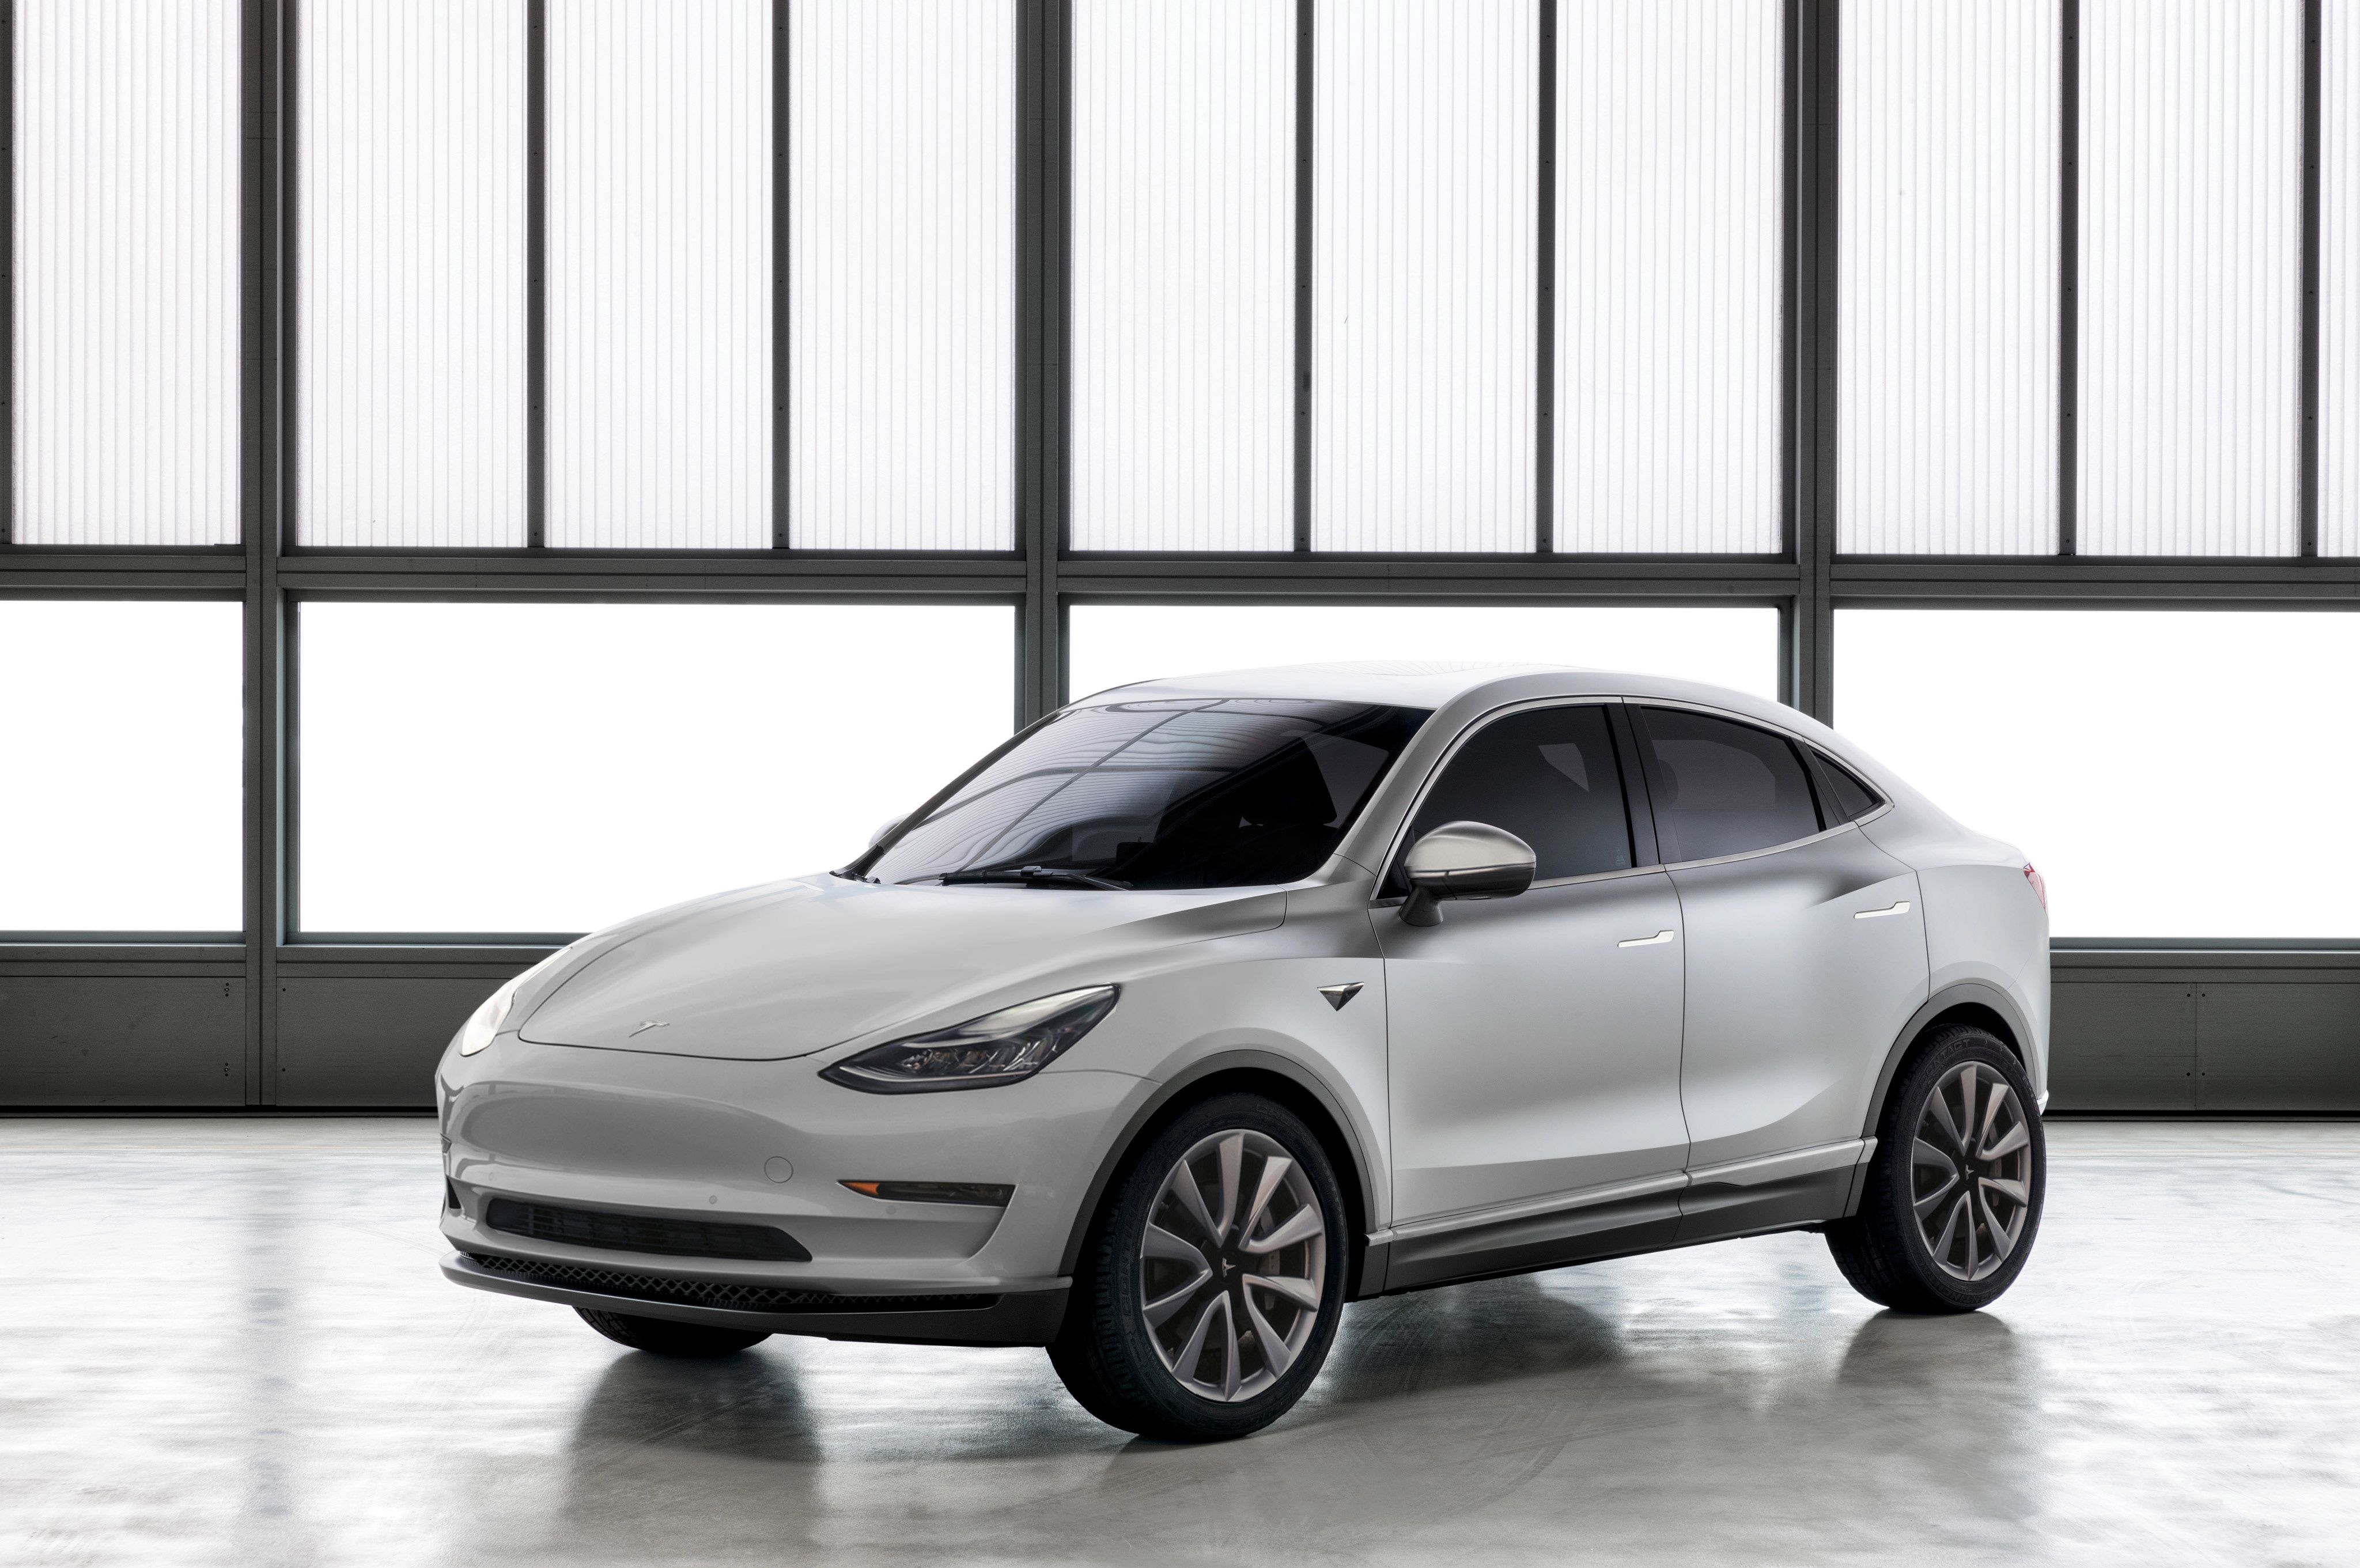 Check Out My Behance Project Tesla Model Y Https Www Behance Net Gallery 65494557 Tesla Model Y Tesla Model Concept Cars Car Amp